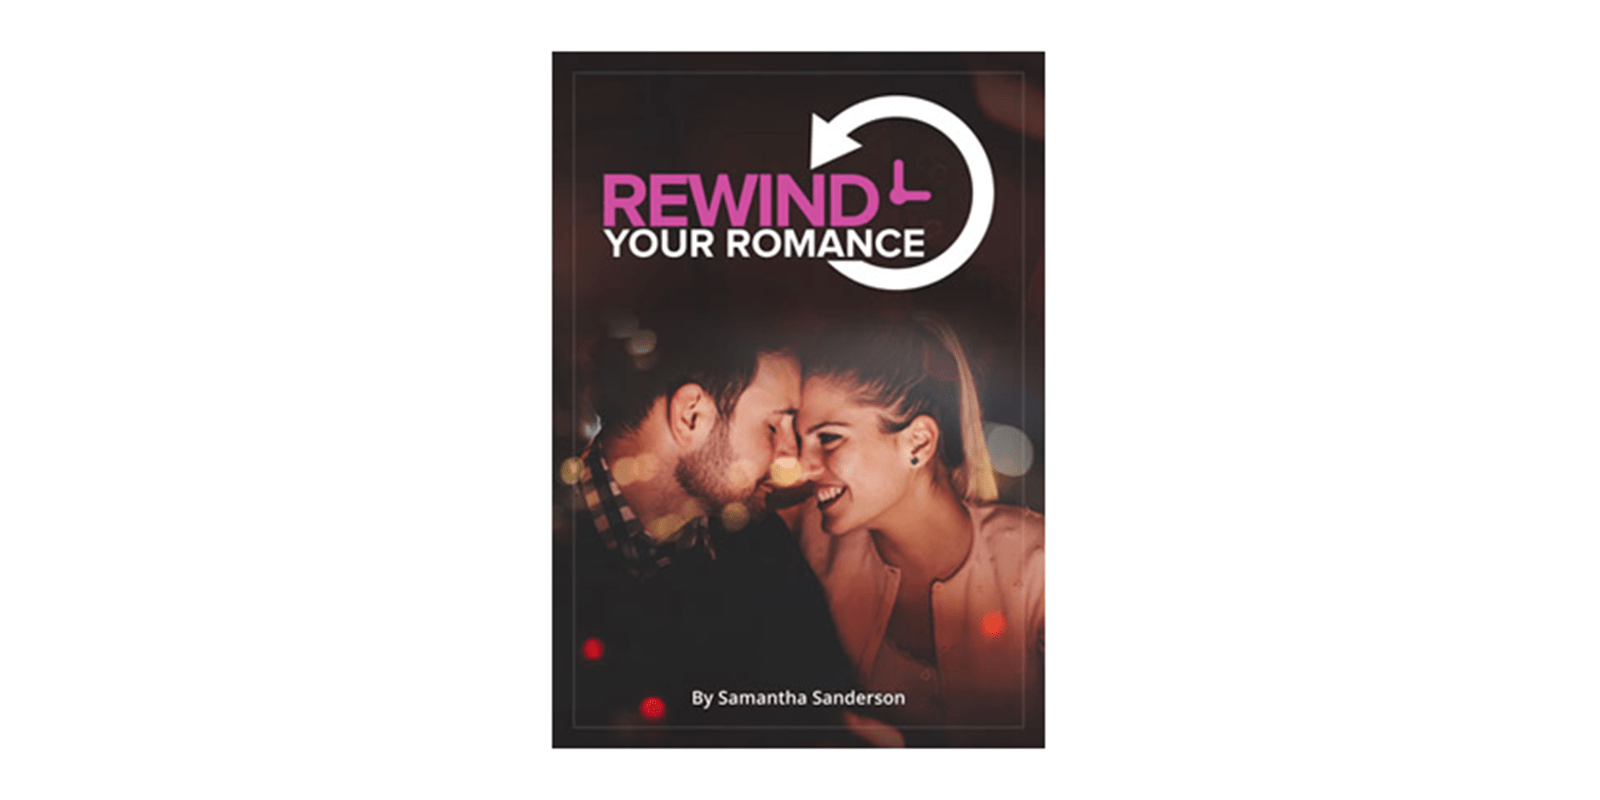 Rewind Your Romance Reviews